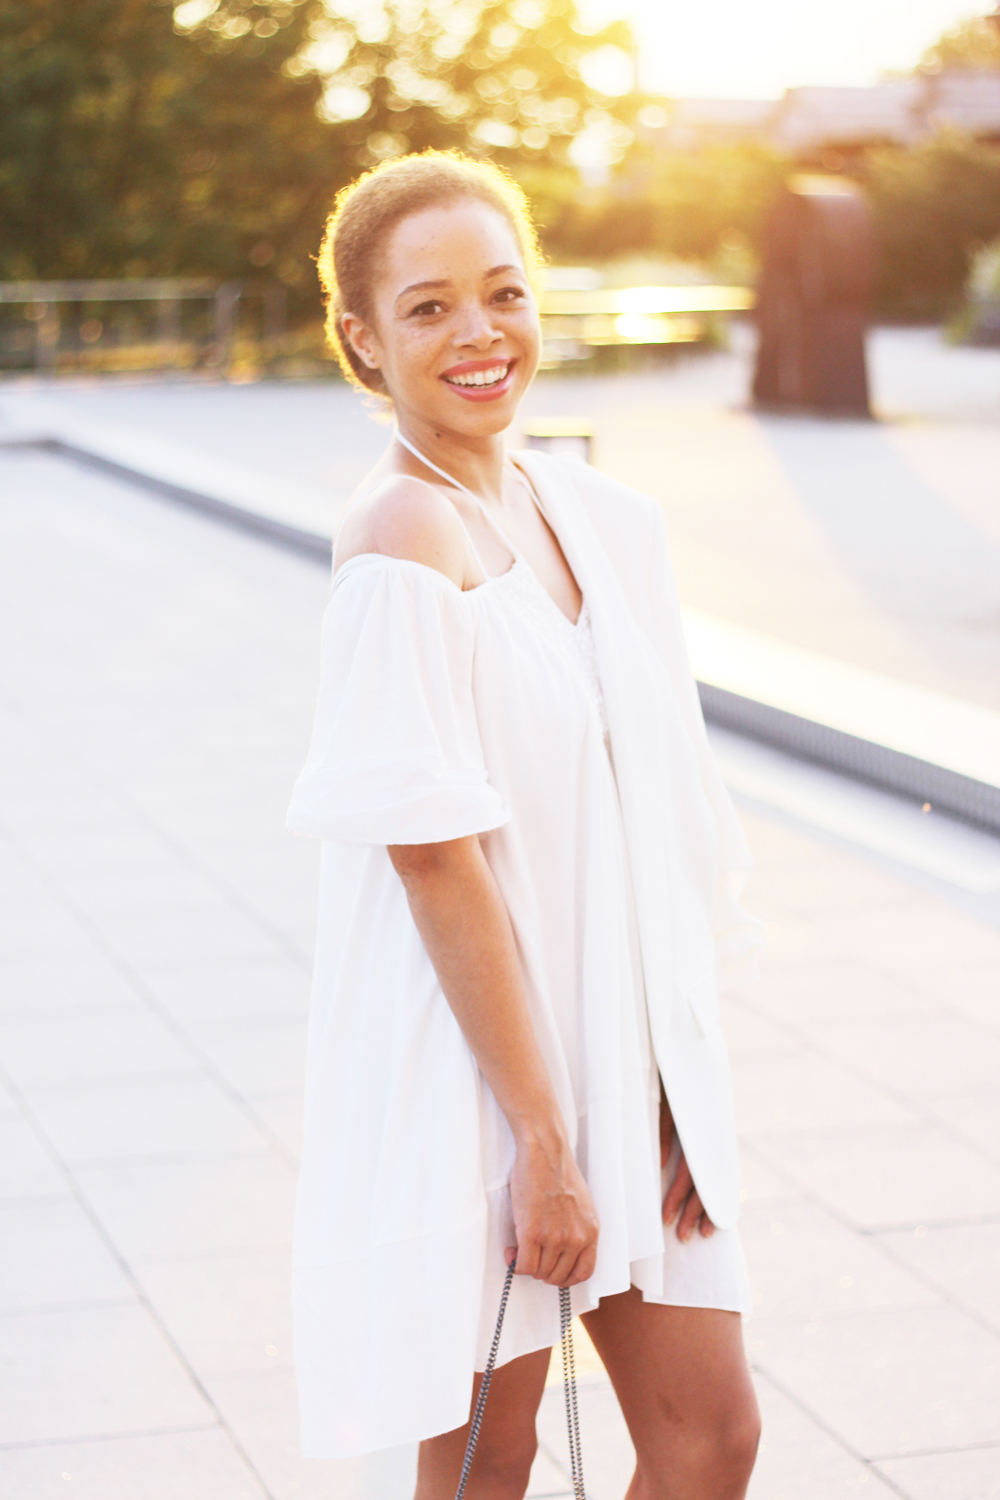 fatimayarie-offshoulderdress-zara-whitedress-embroidered-smile-girl-summerdress-munichblogger-img_9904